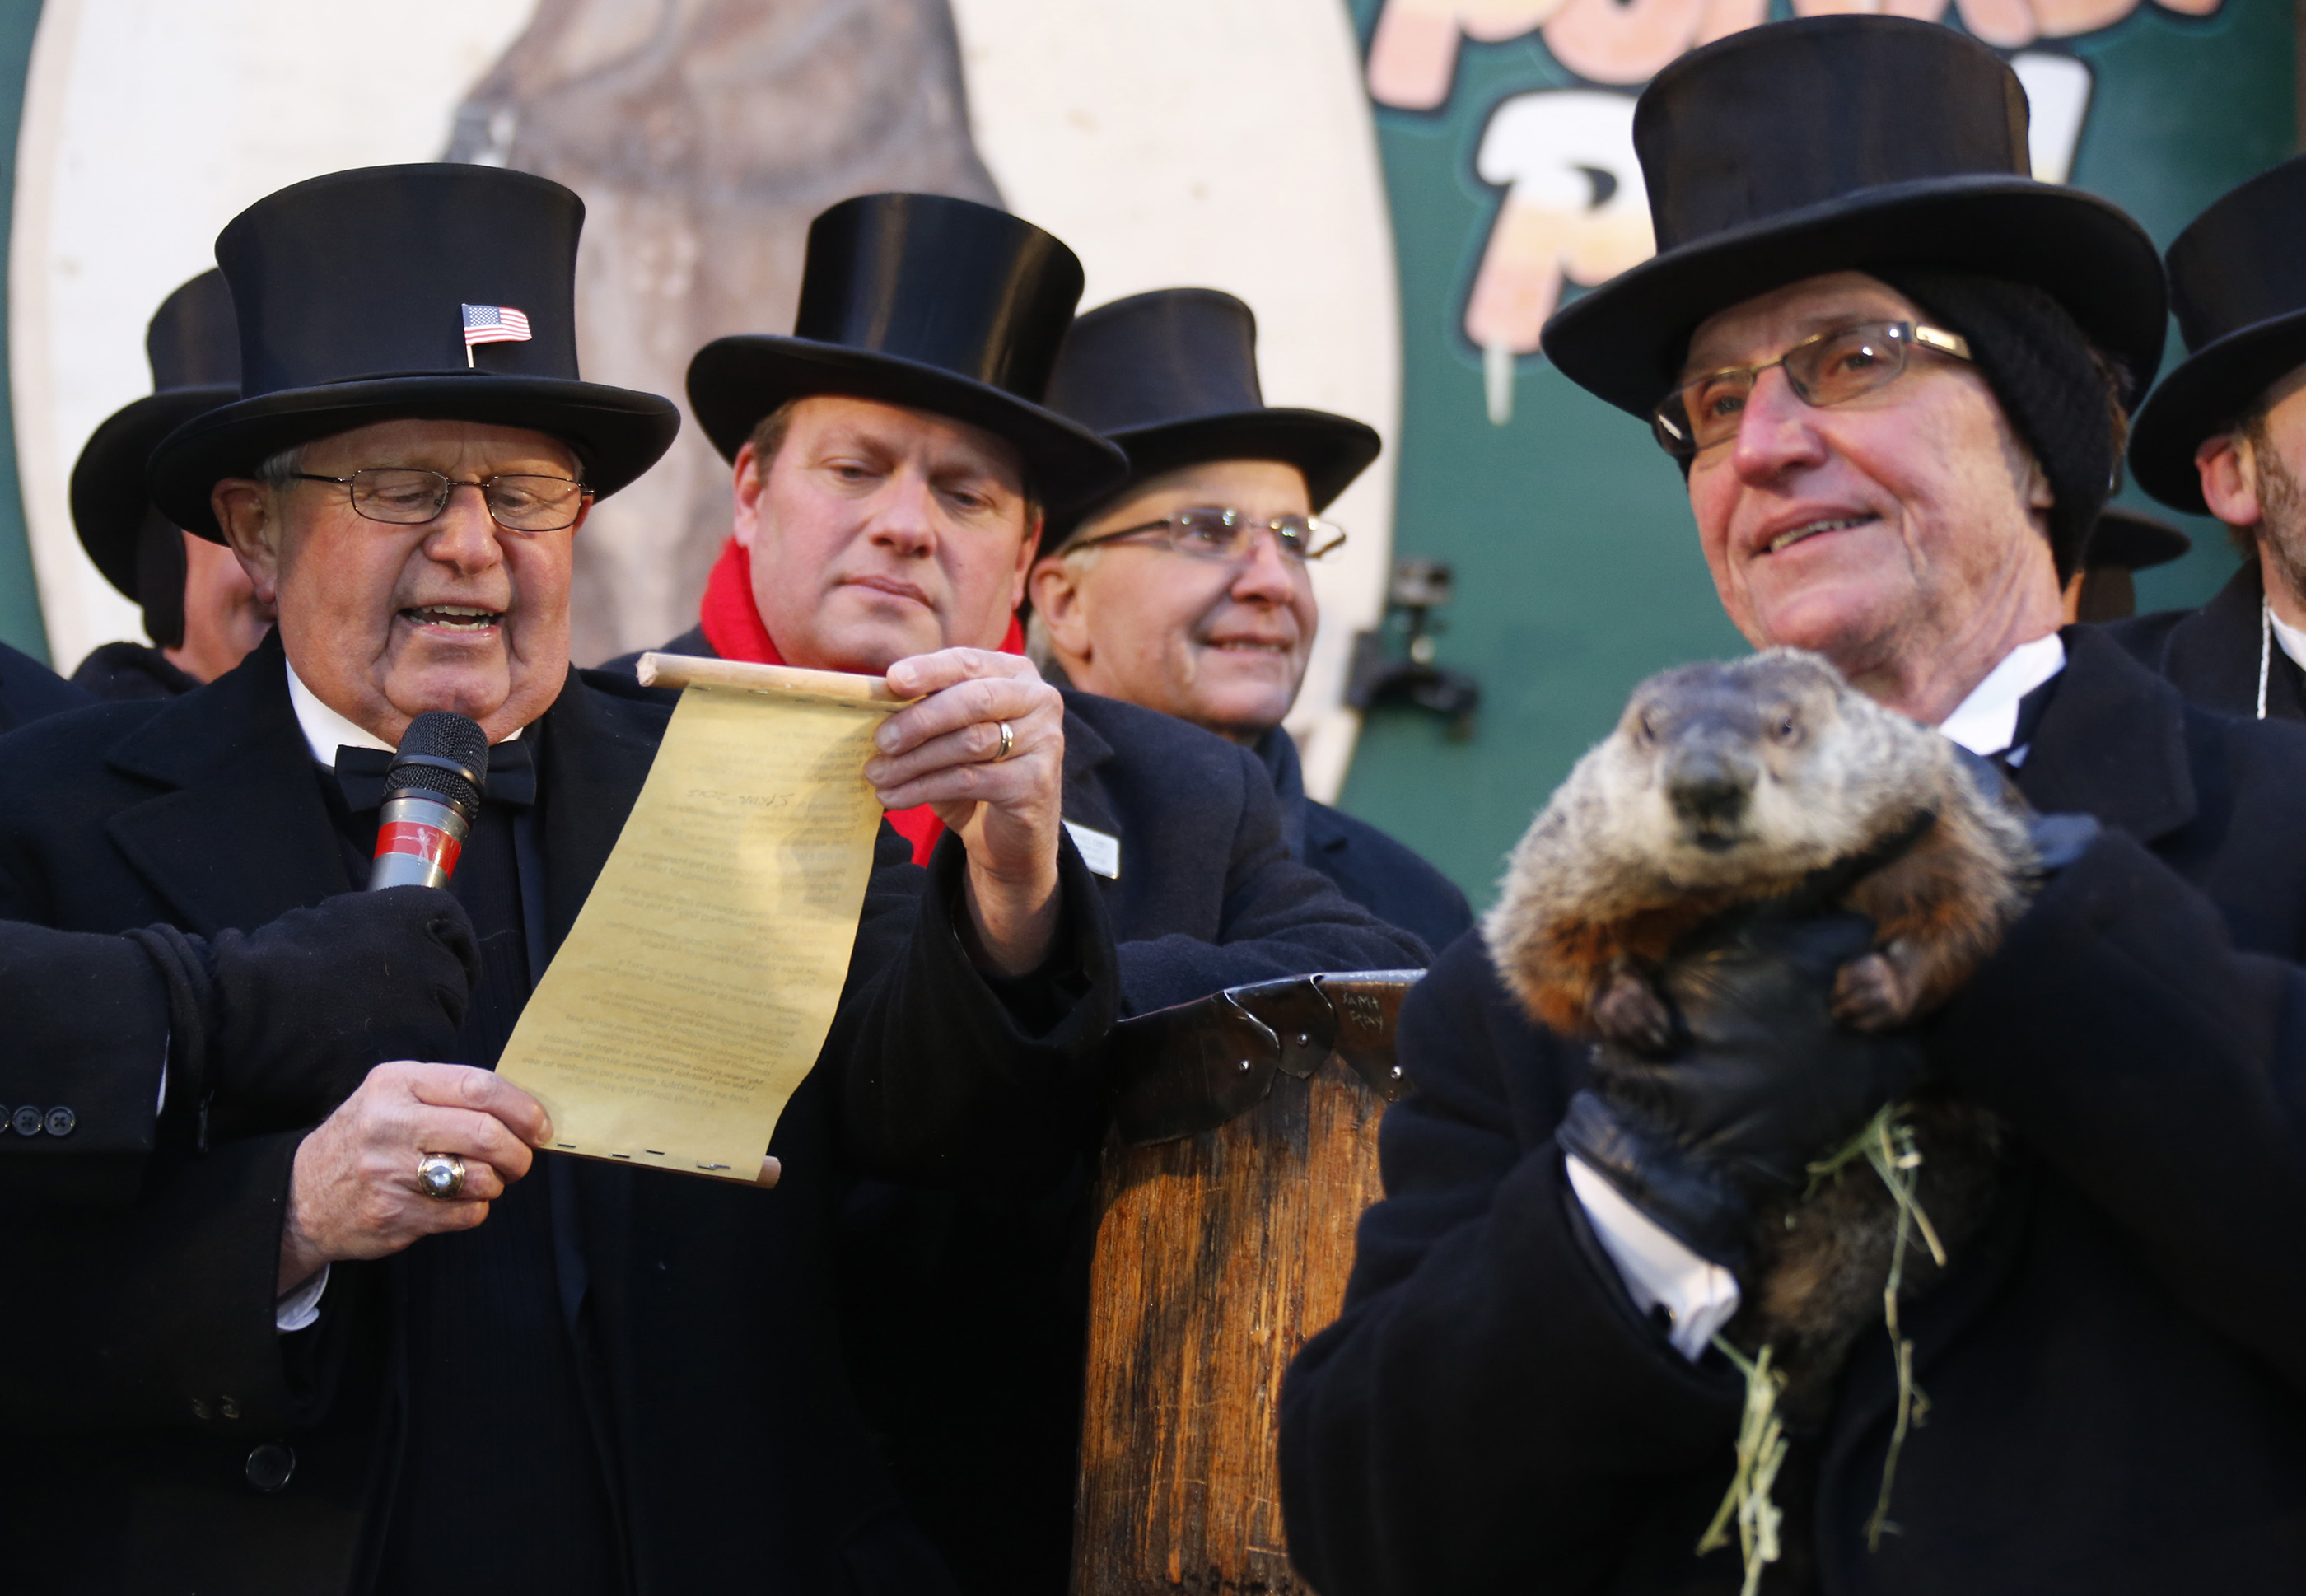 punxsutawney gay personals Punxsutawney, pa (ap  records dating to 1887 show phil has now predicted more winter 103 times while forecasting an early  punxsutawney phil sees 6 more weeks .